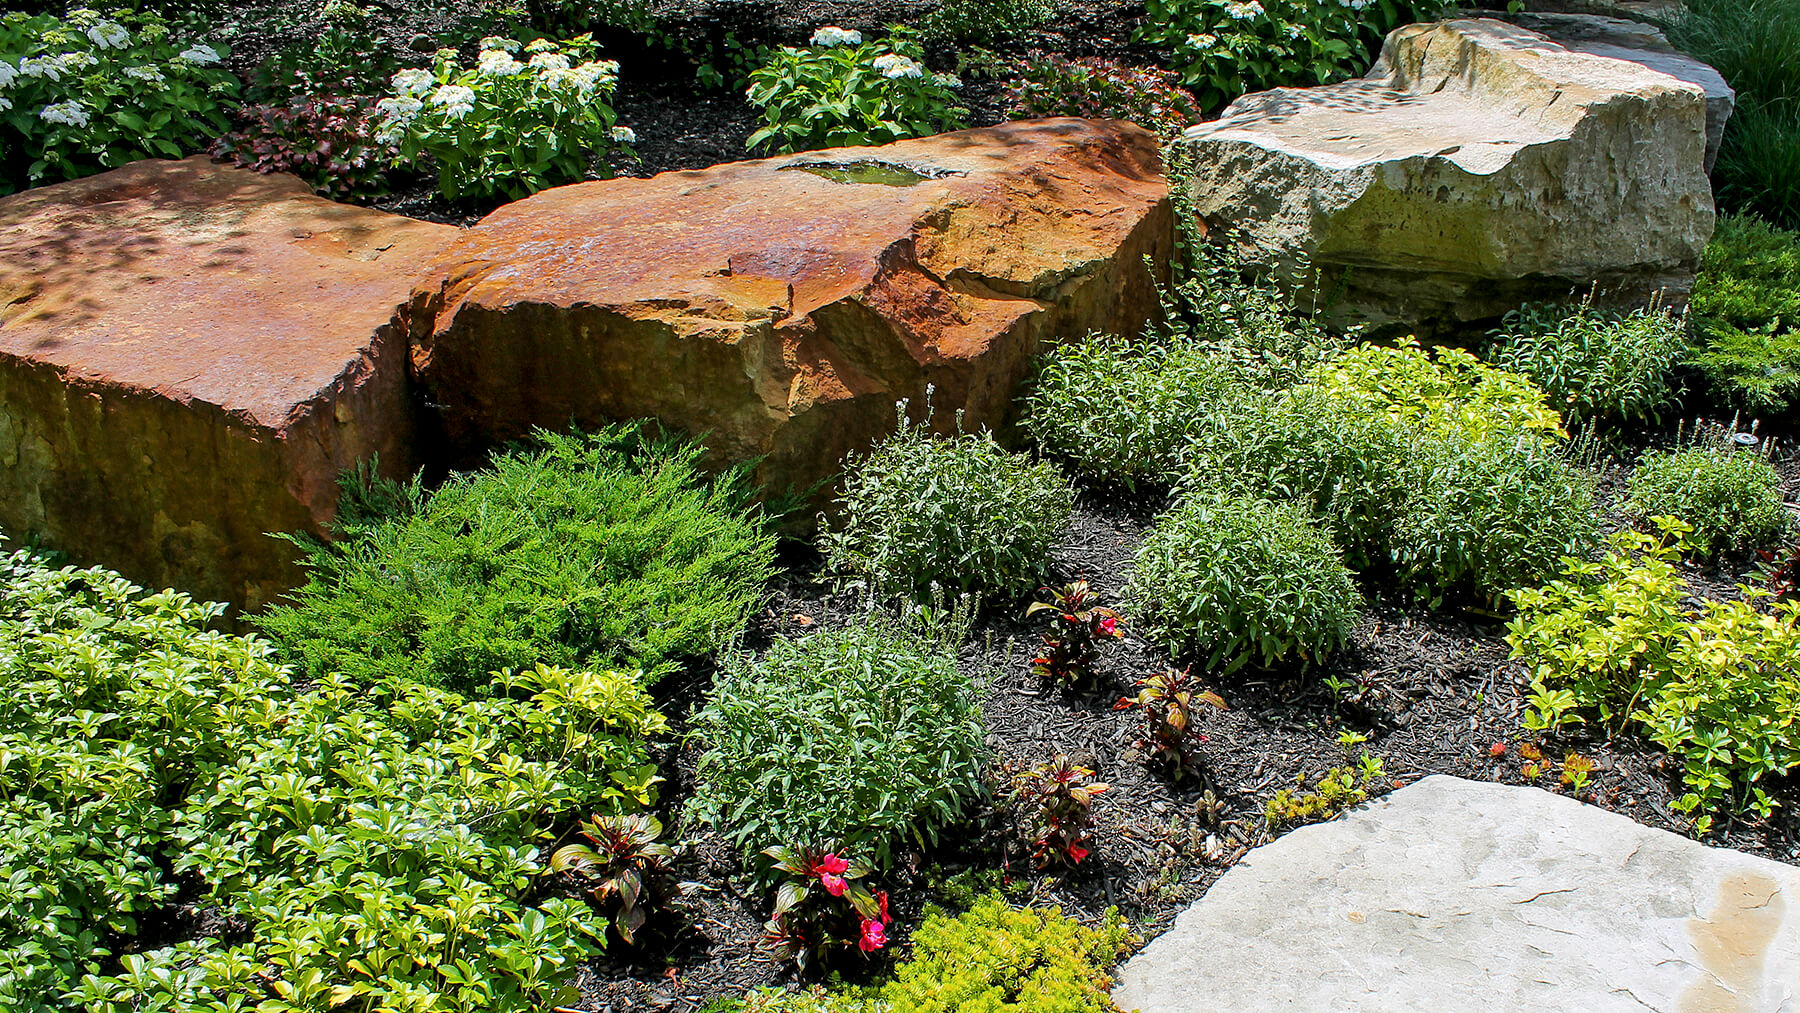 a rock garden with plants